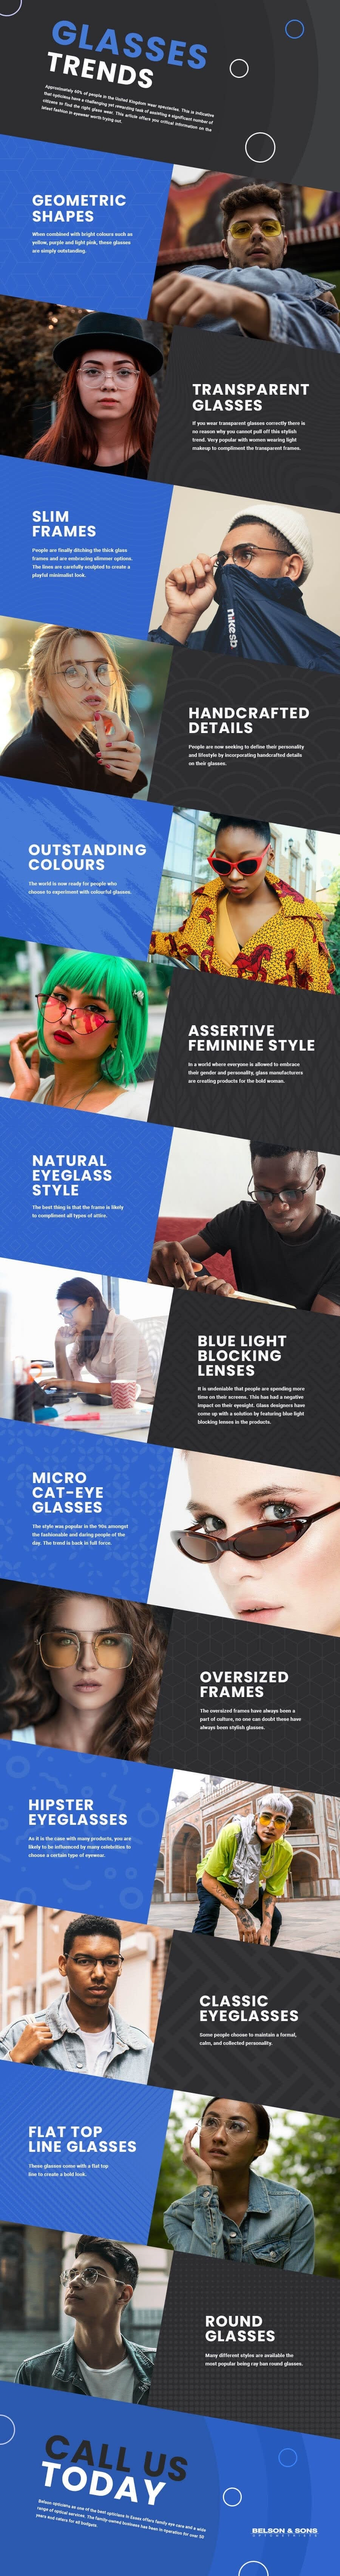 Glasses Trends for 2020 #infographic